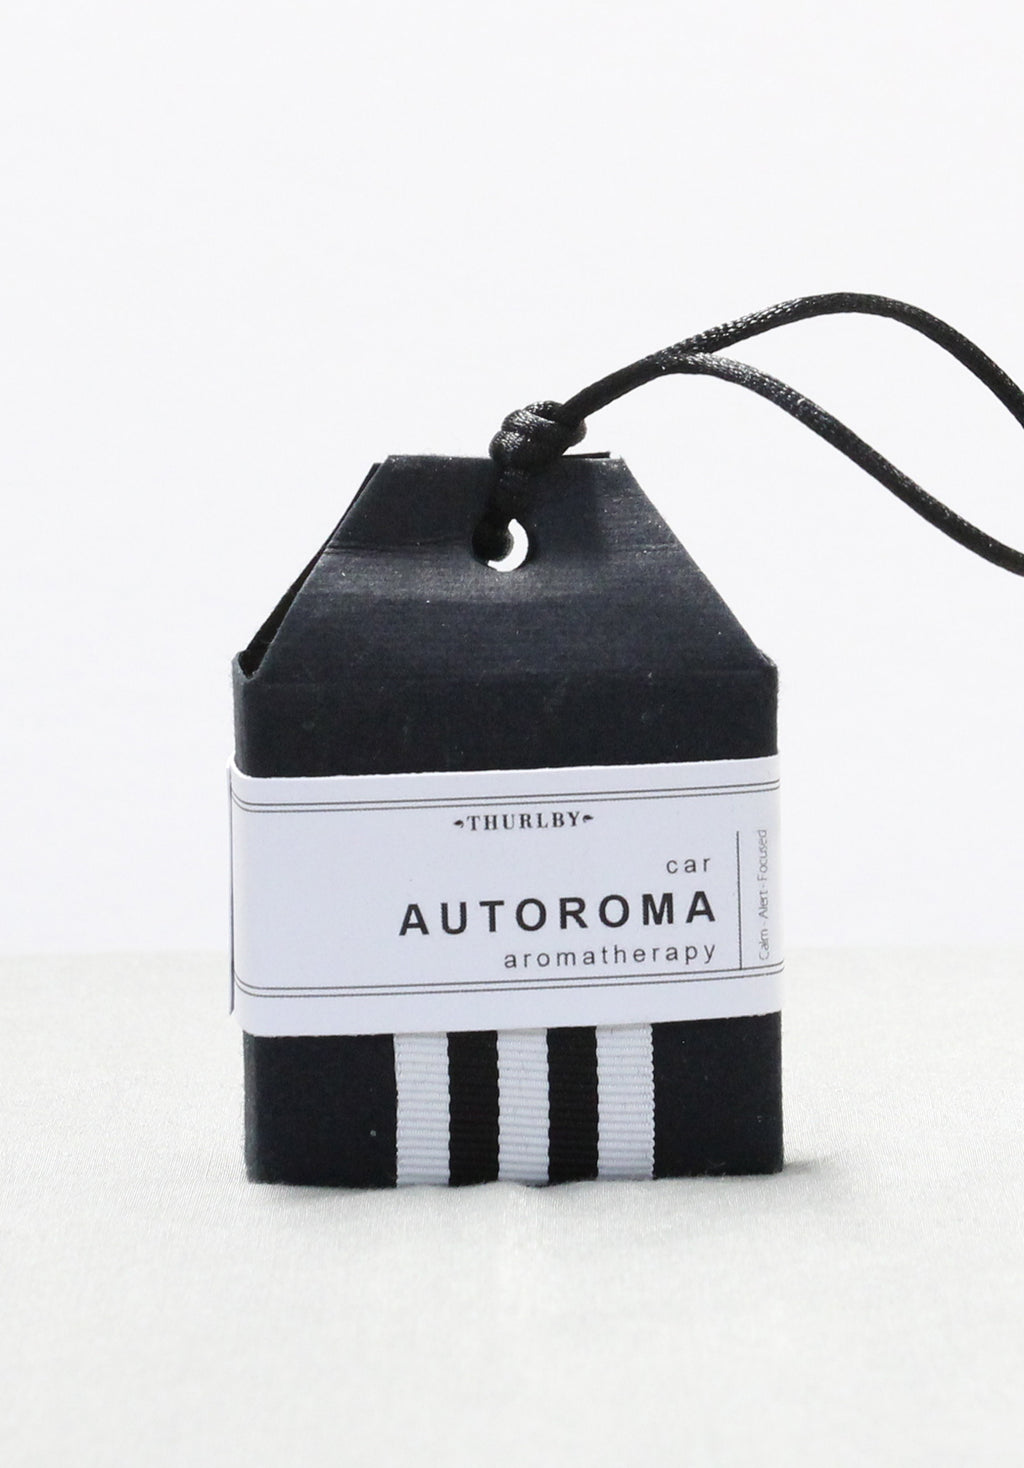 australian made aromatics, sustainable fashion online, australian made car aromas